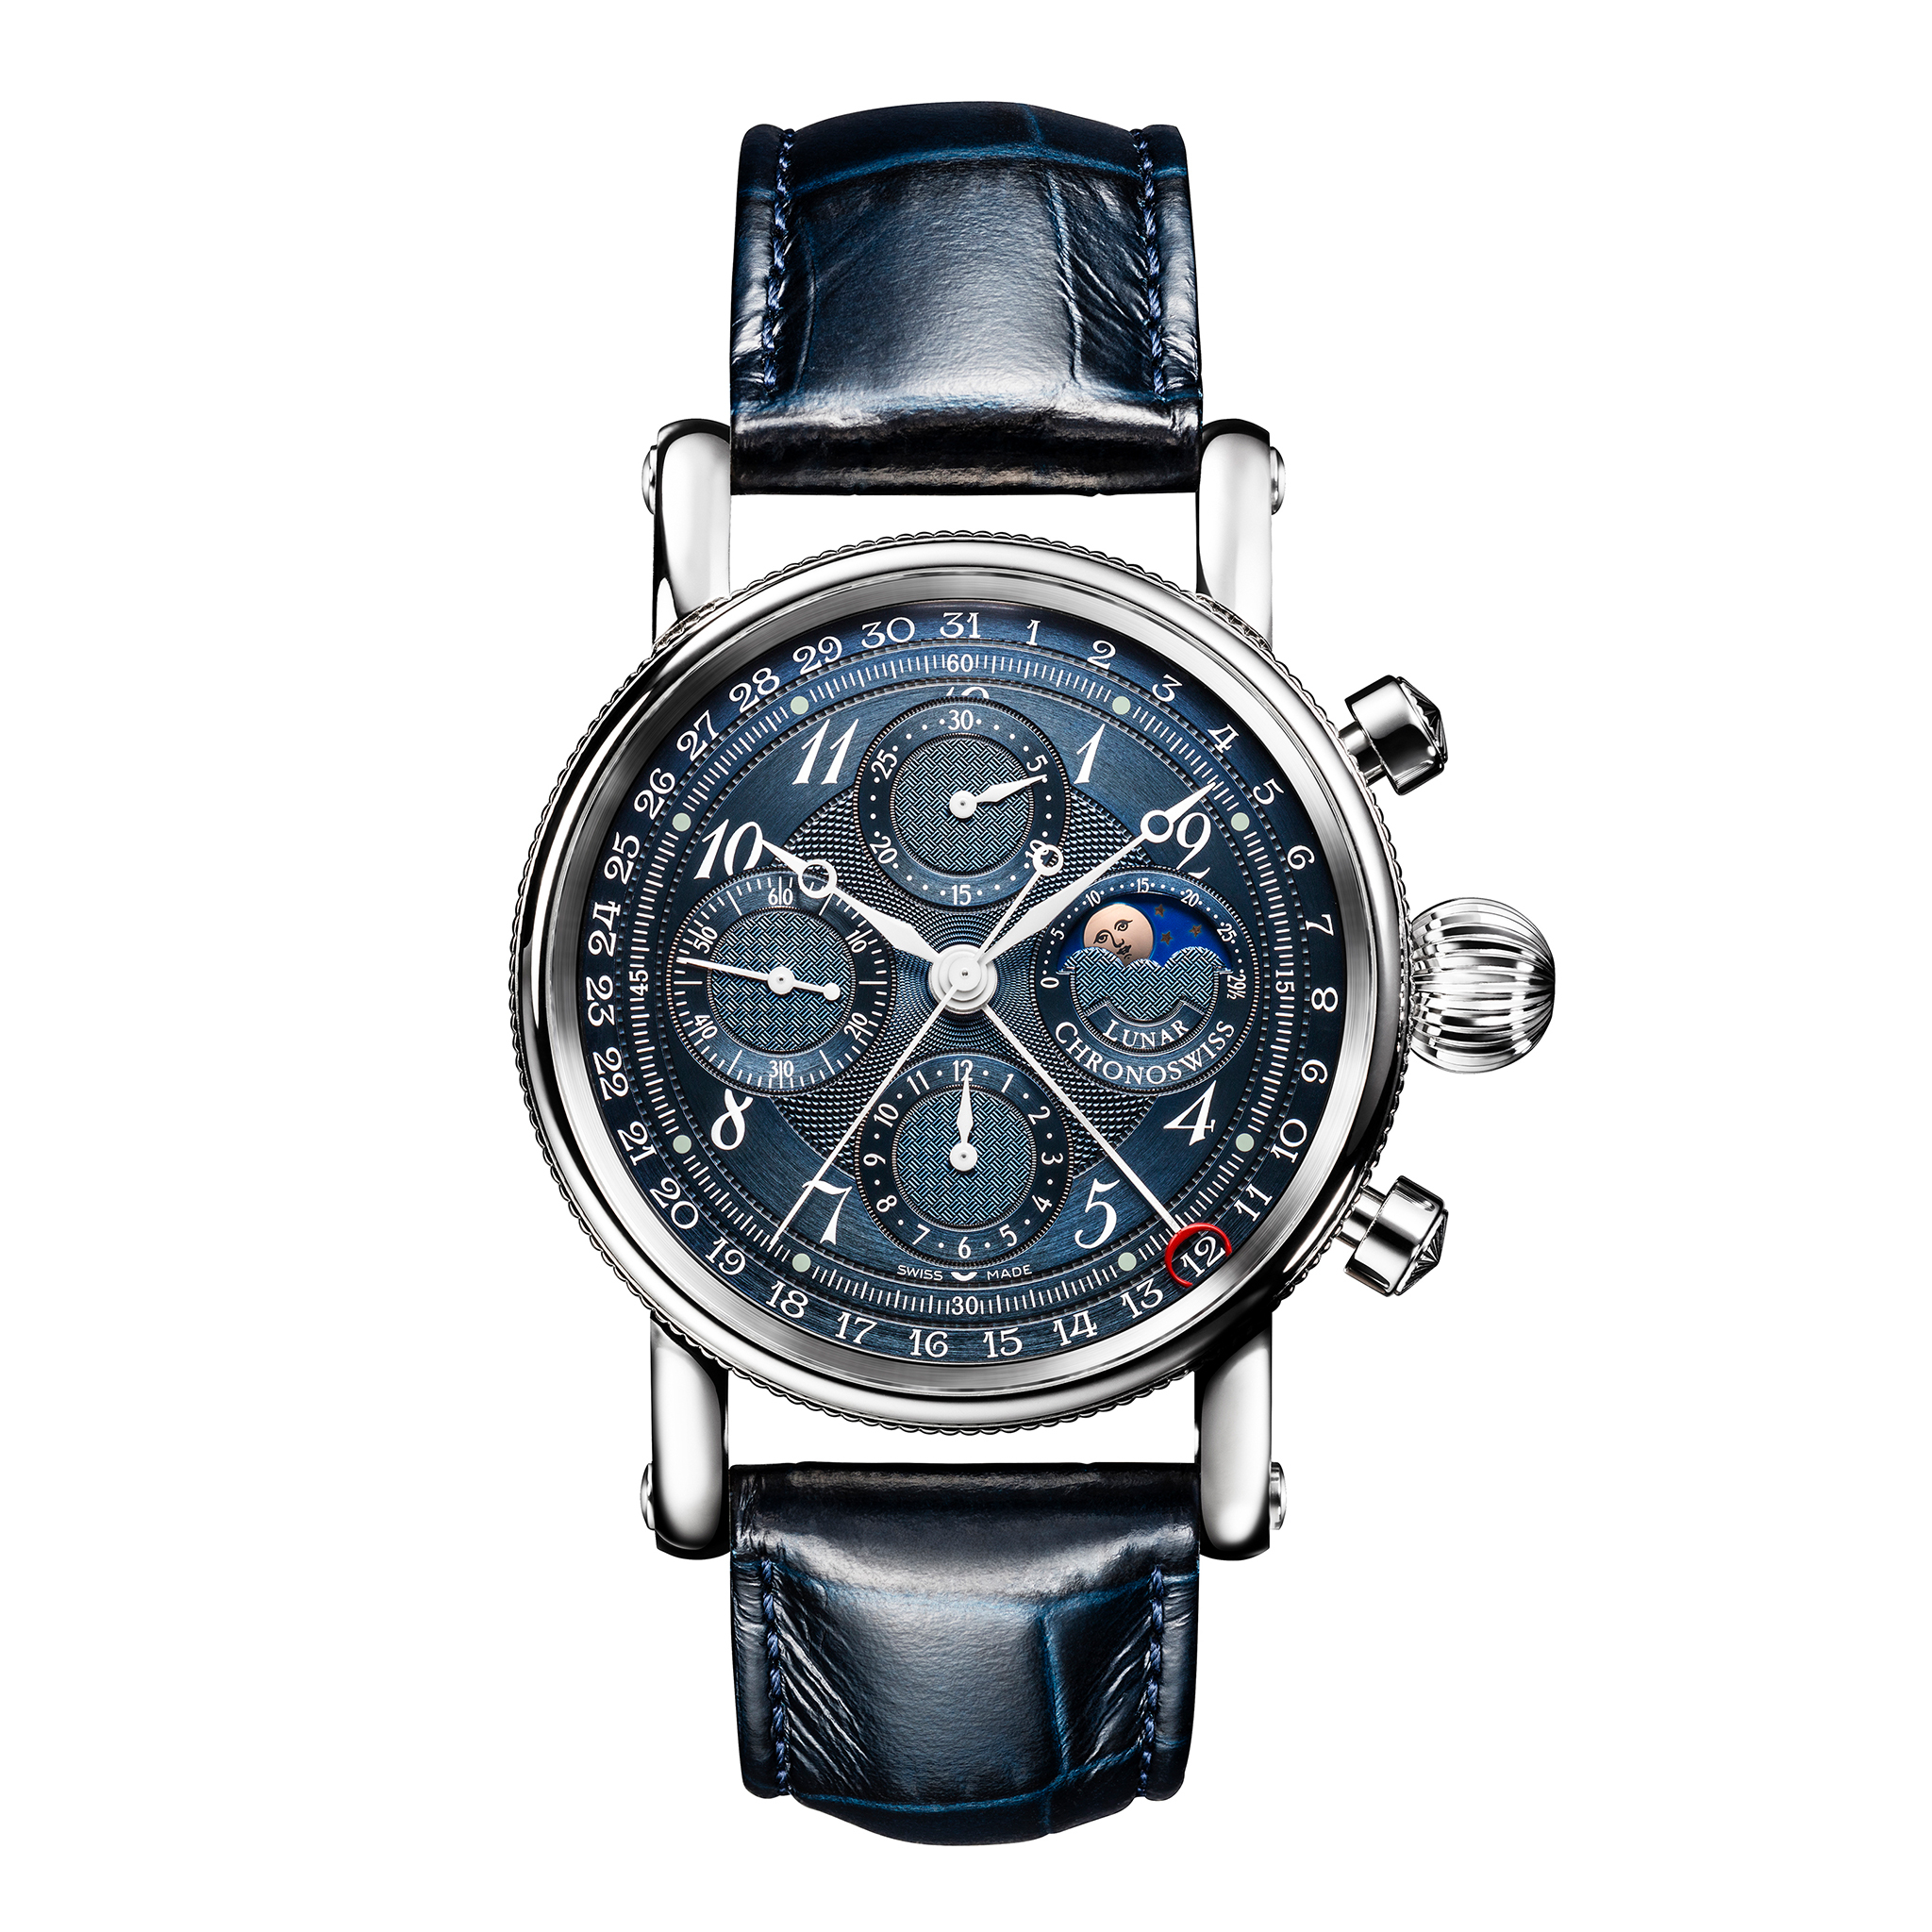 CHRONOGRAPH MOON PHASE